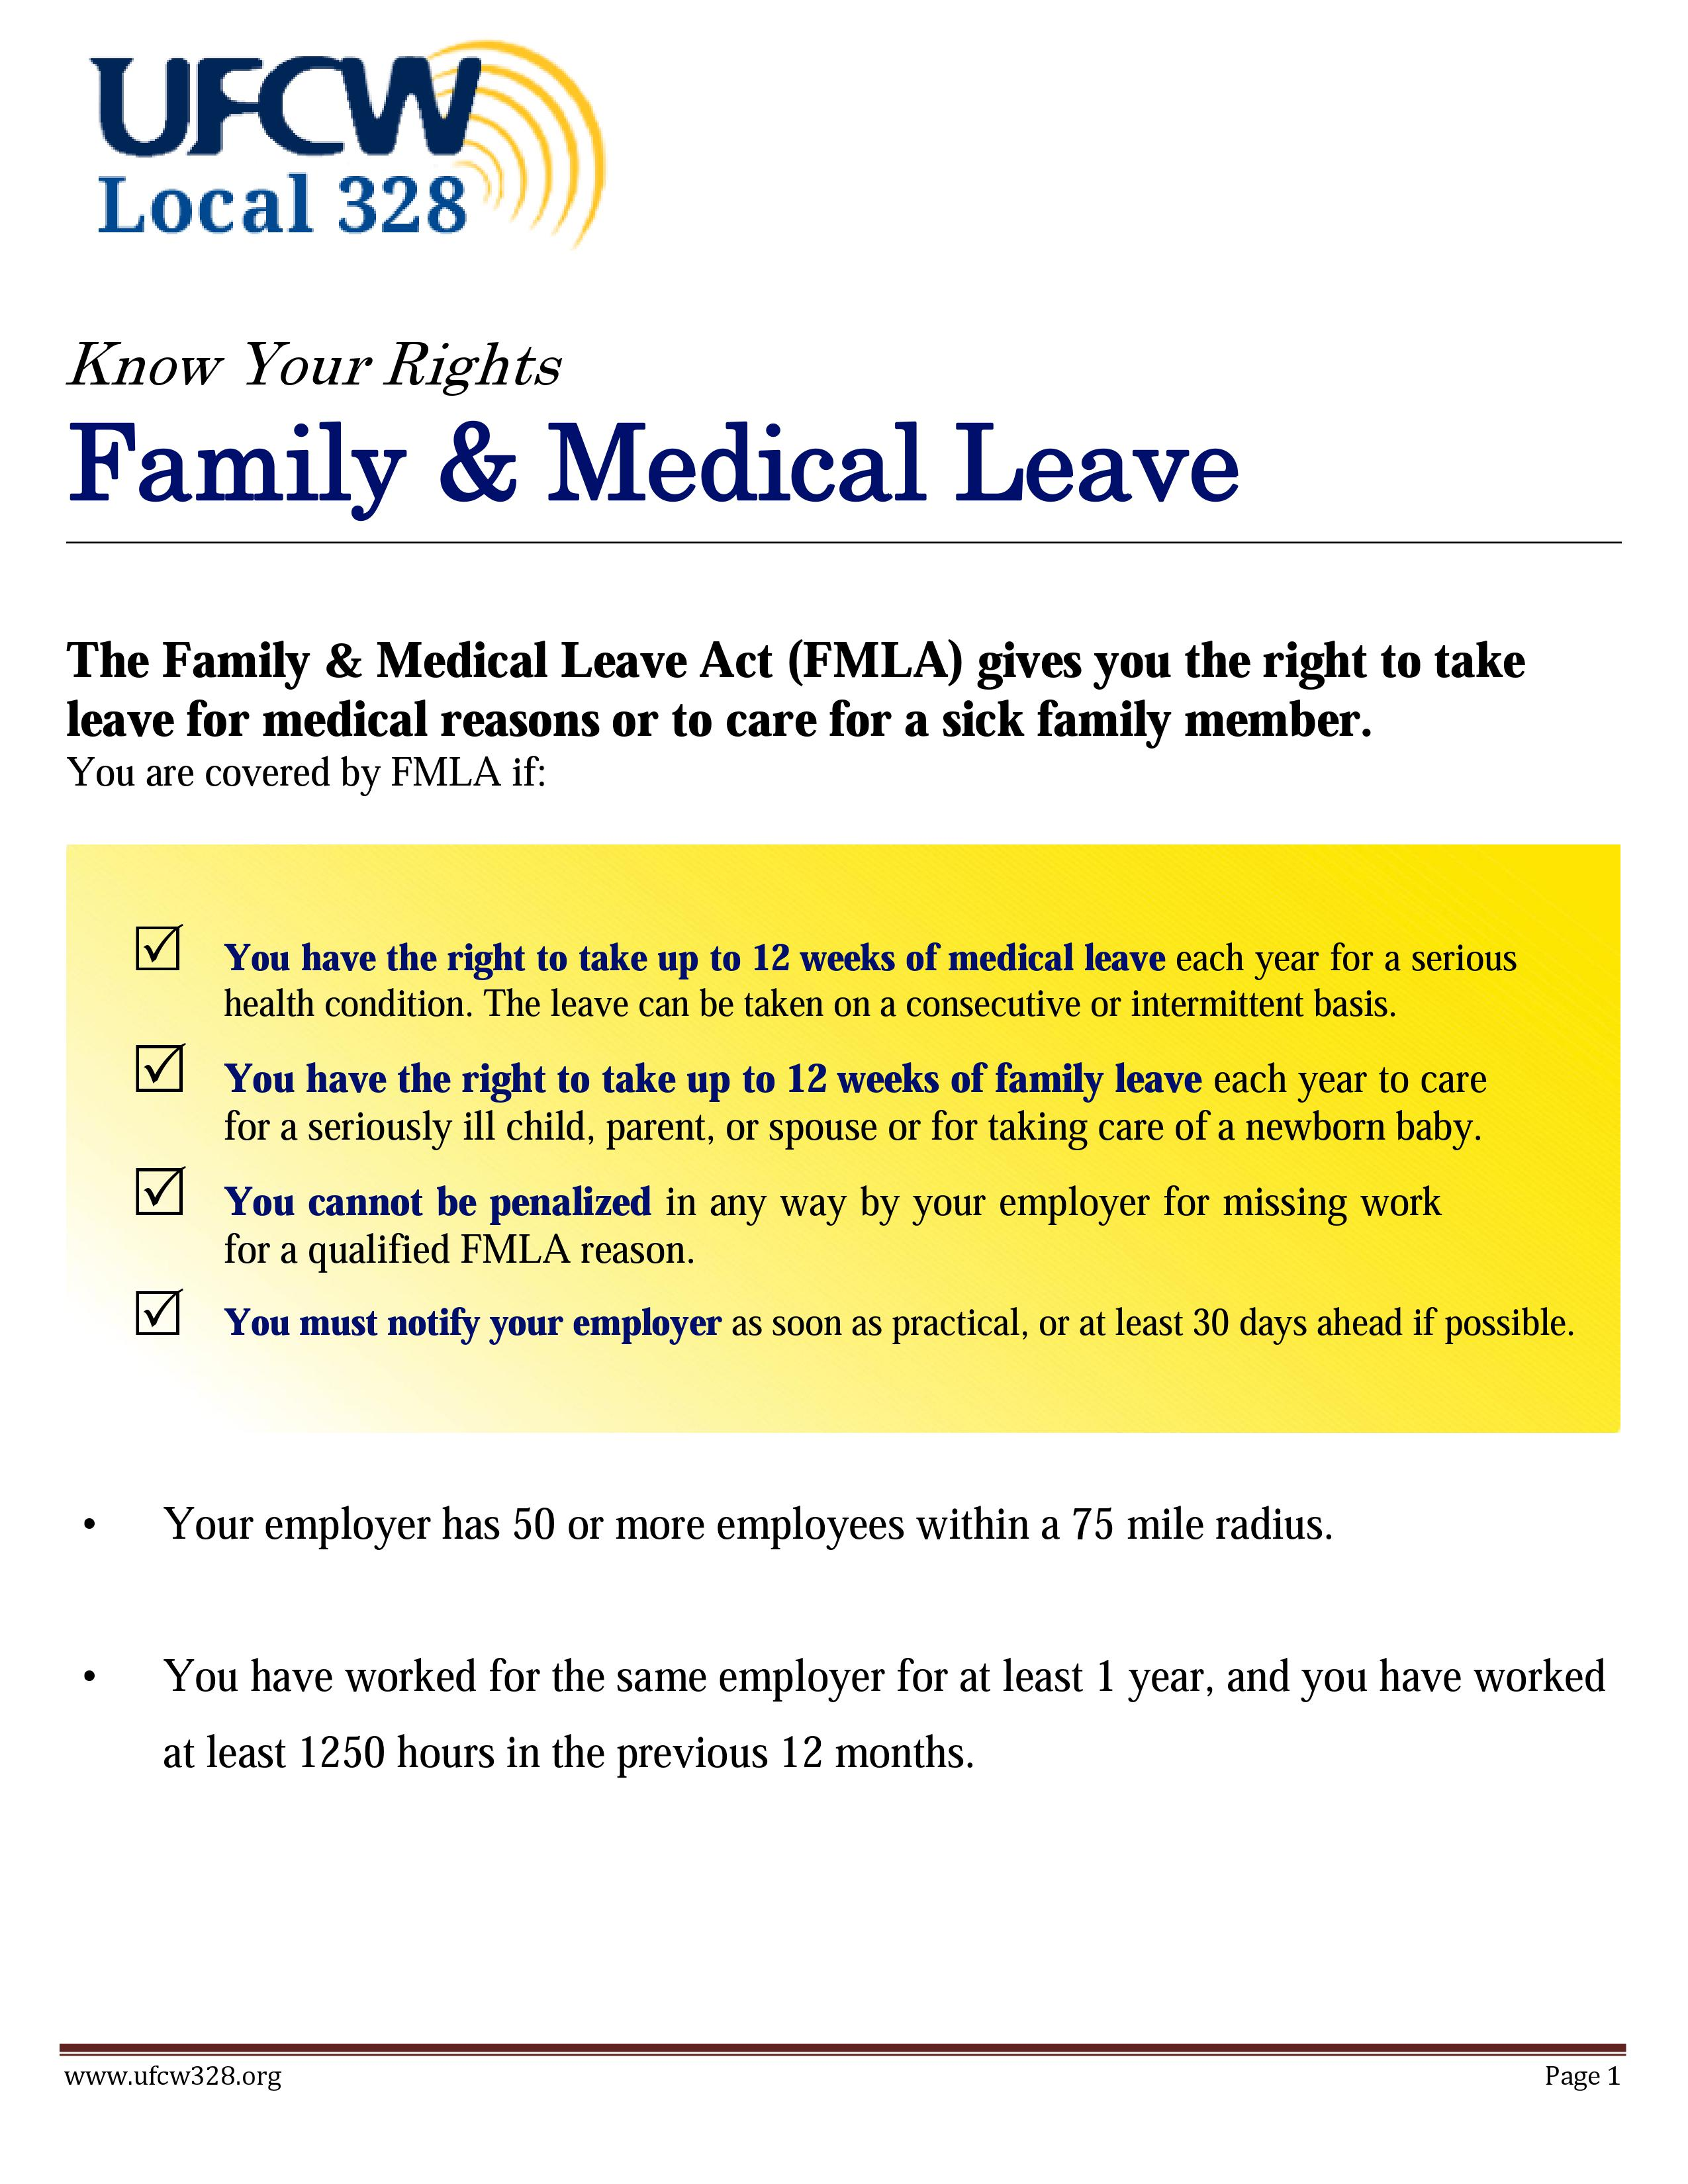 ufcw local health and welfare leaves unemployment 0001 0002 0003